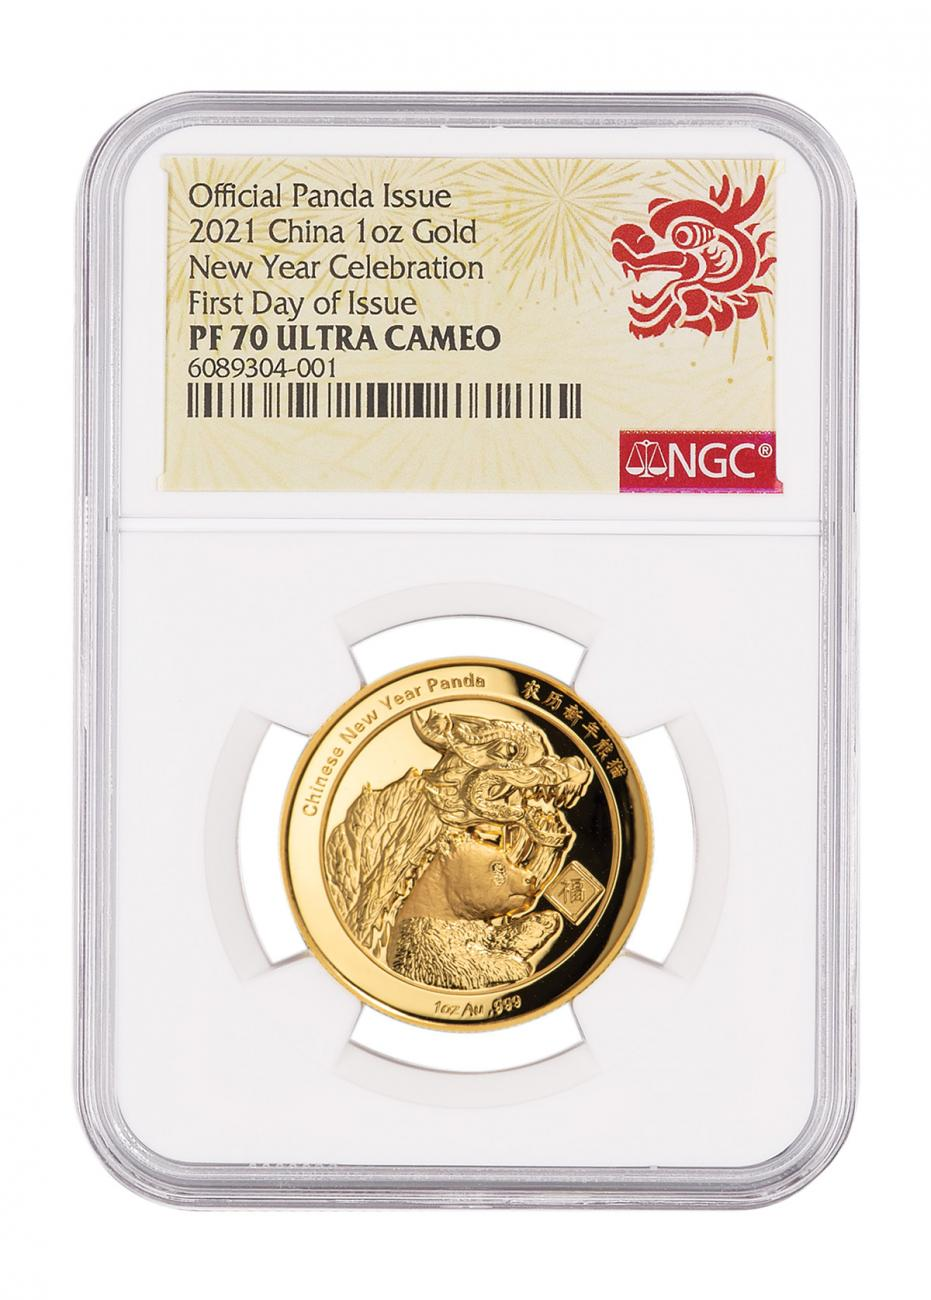 2021 China New Year Celebration Panda Ultra High Relief 1 oz Gold Proof Medal Scarce and Unique Coin Division NGC PF70 UC FDI